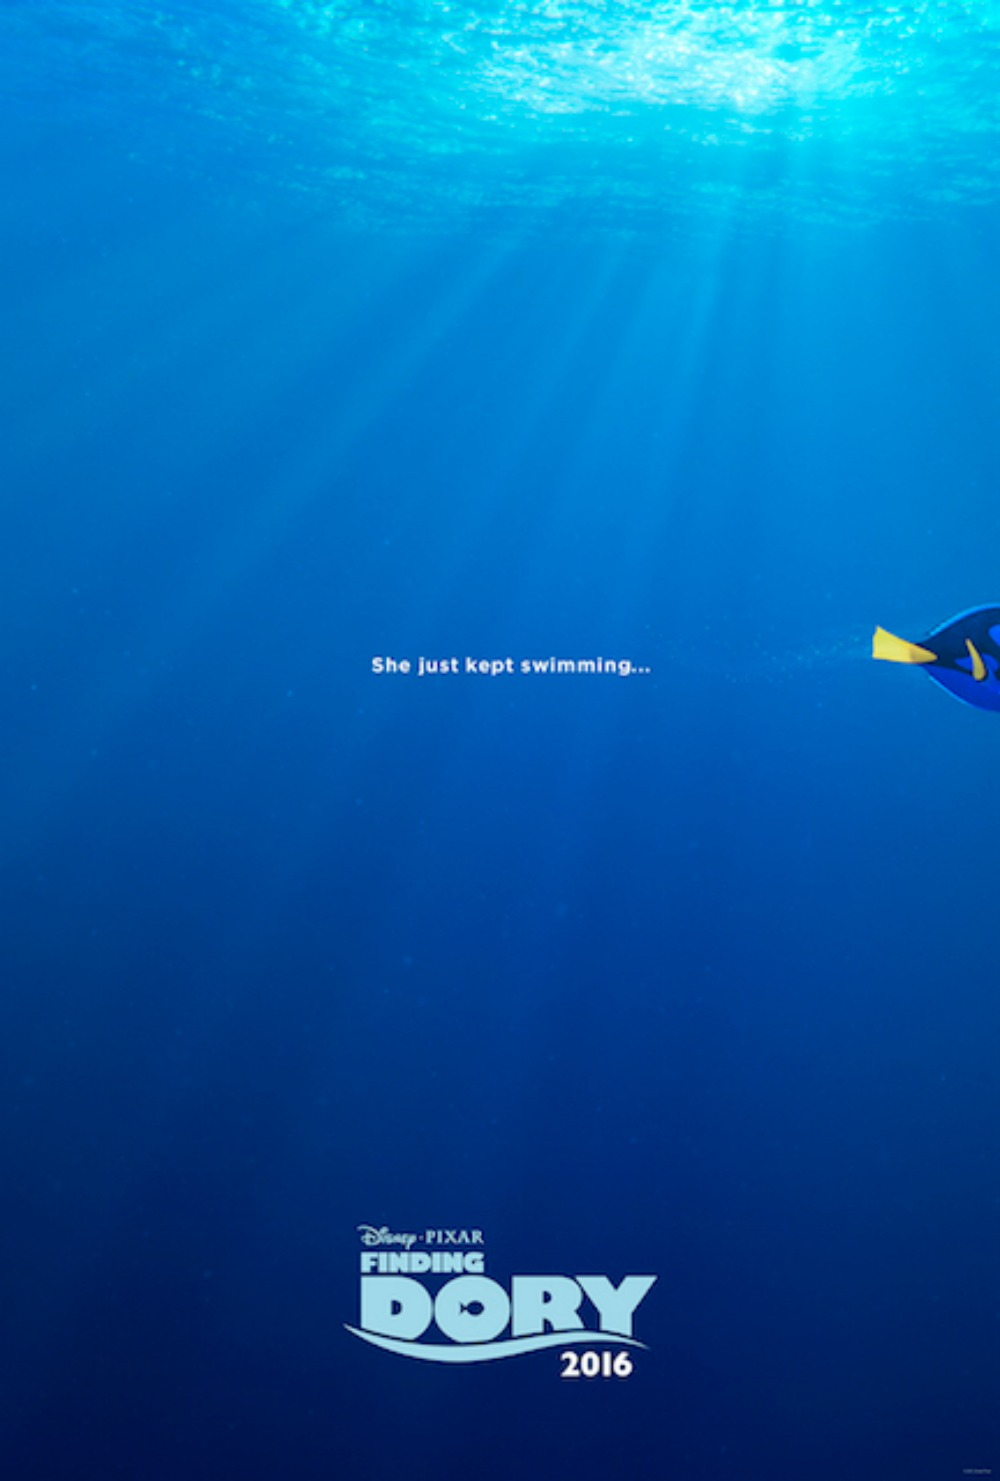 Finding Dory Trailer and Poster #FindingDory